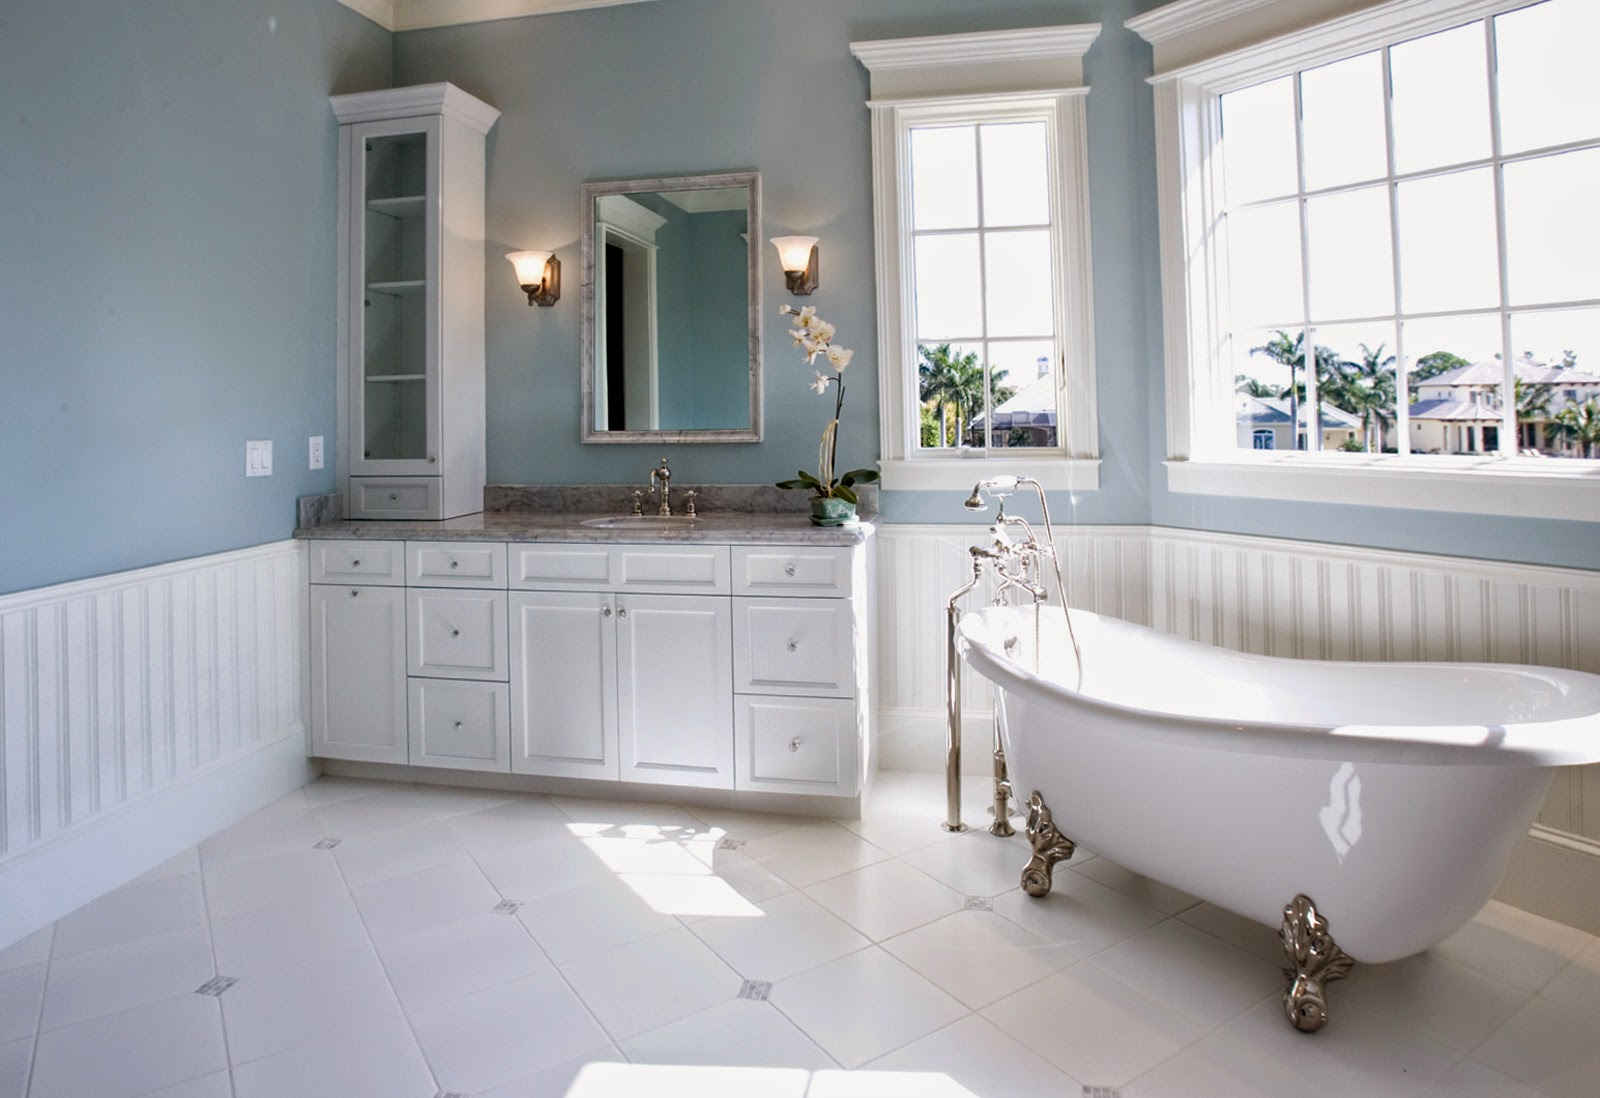 So You Can Have A Beautiful Bathroom As Its Owner. We Hope Beautiful  Bathroom Design In This Article Can Help You To Find Your Dream Bathroom On  Your Home.